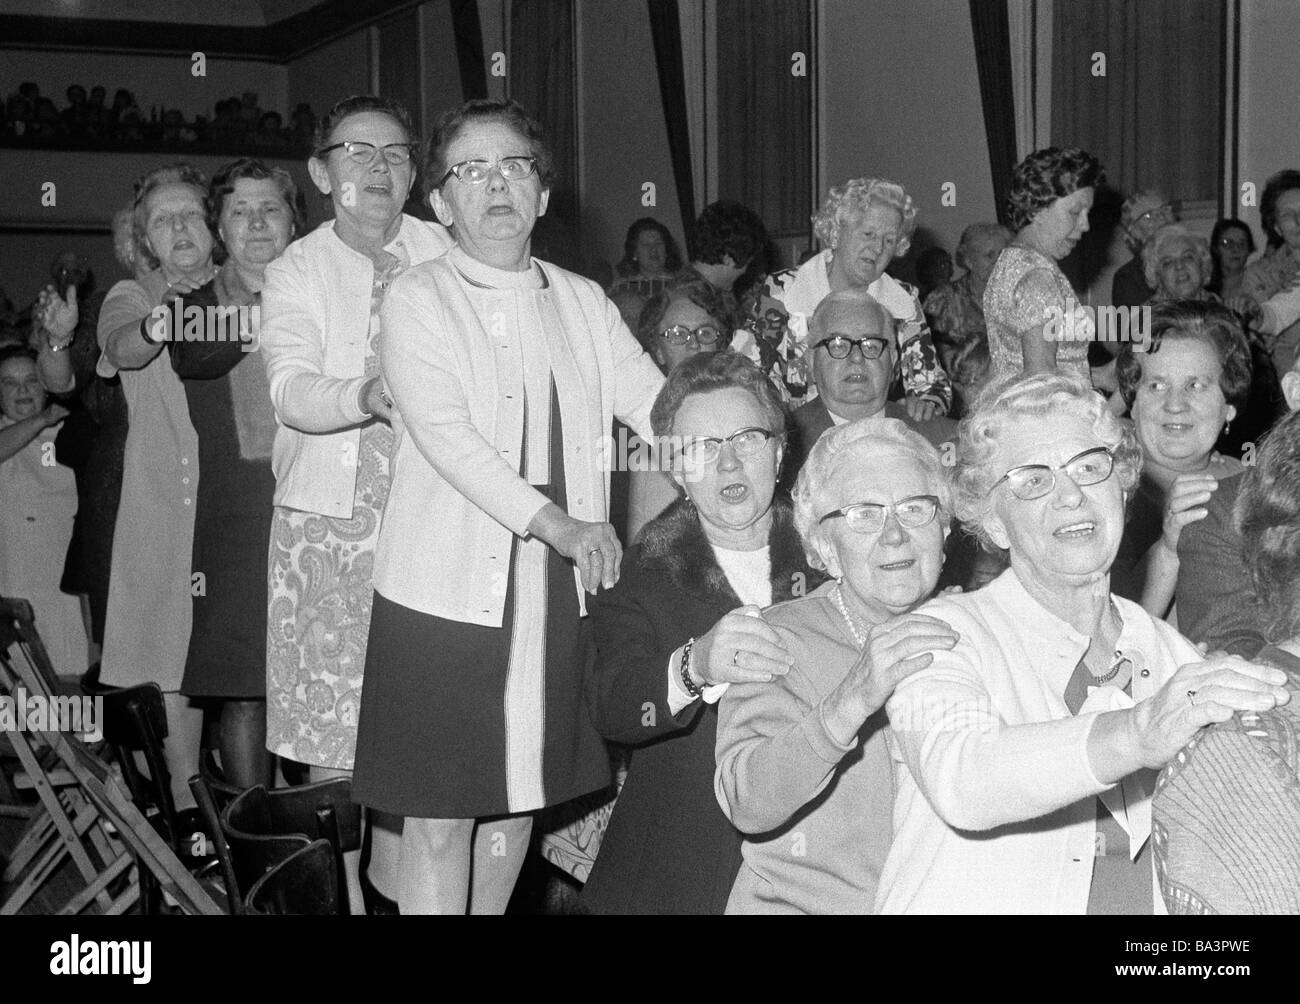 Seventies, black and white photo, people, freetime, carnival for older people, seniors ball, older women and men - Stock Image